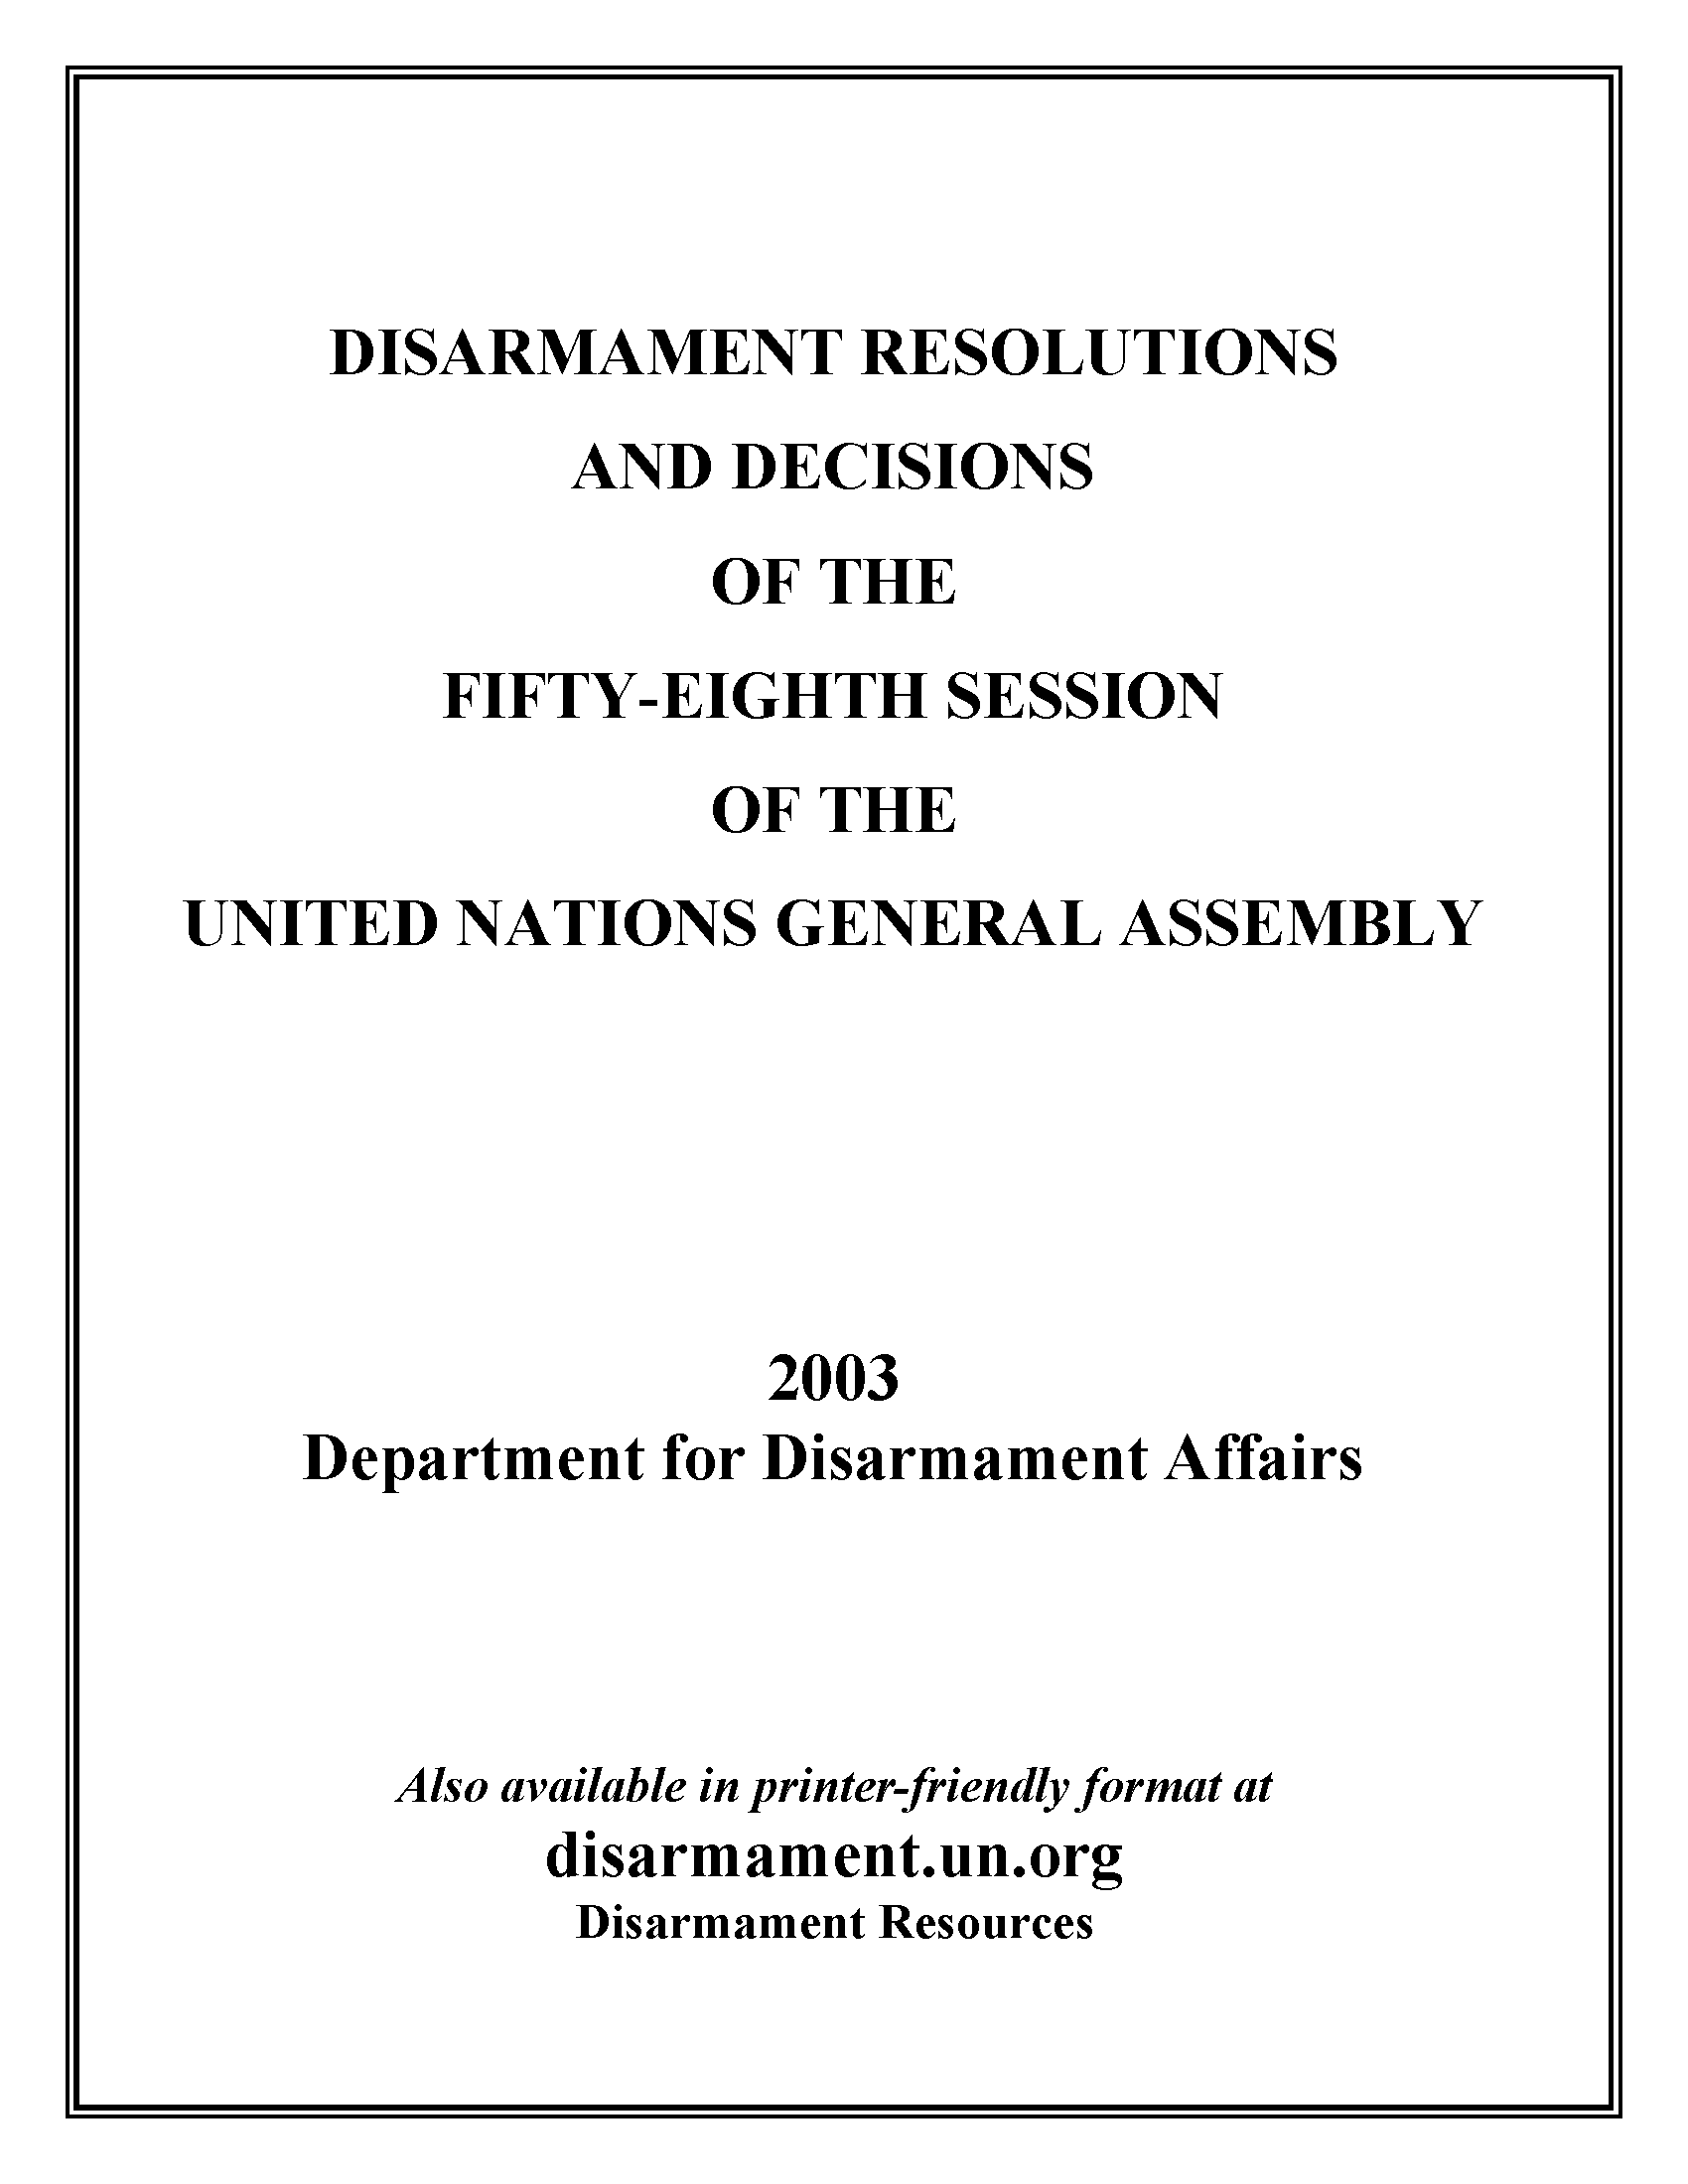 Disarmament Resolutions and Decisions of the Fifty-eighth Session of the United Nations General Assembly, 2003